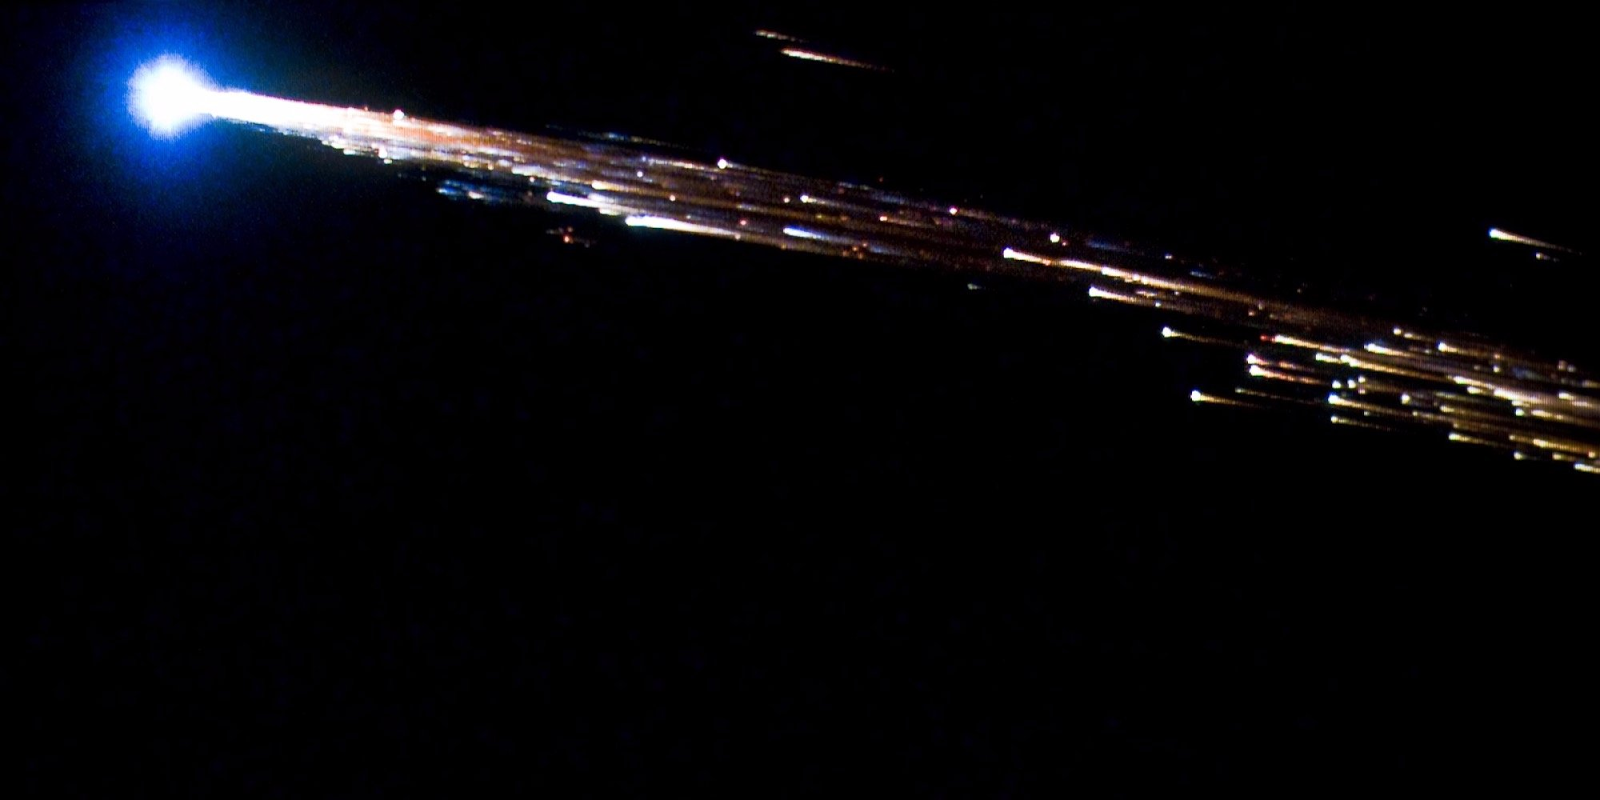 ESA's Jules Verne ATV breaks apart into a fireball while reentering Earth's atmosphere on September 29, 2008.NASA/ESA/Bill Moede and Jesse Carpenter